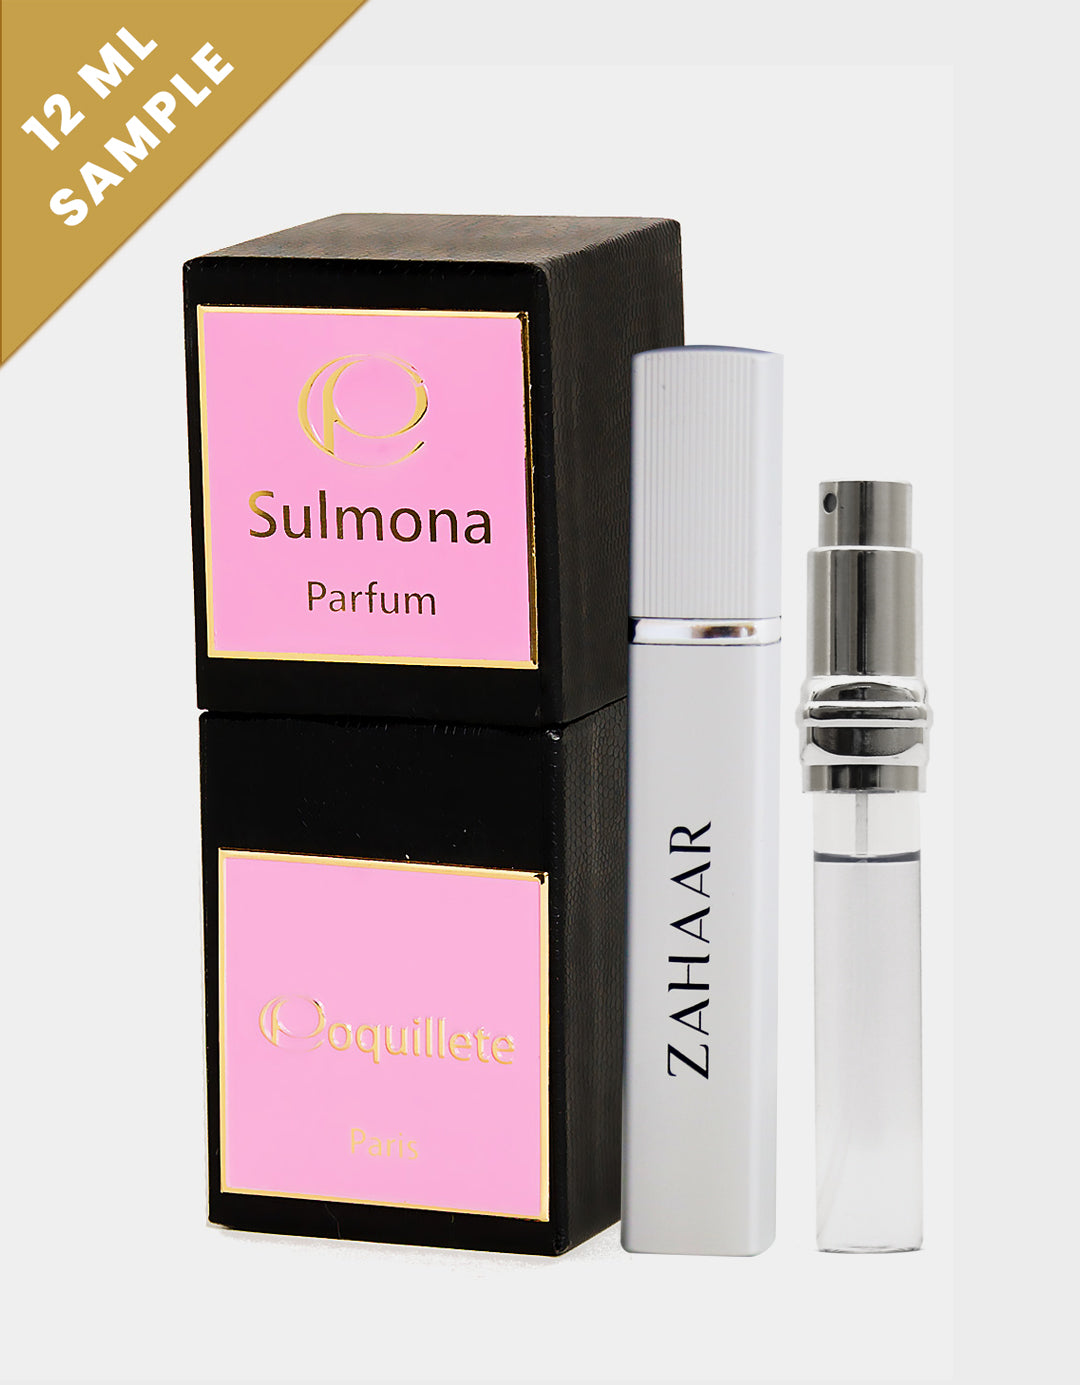 Sulmona - 12ml Travel Spray